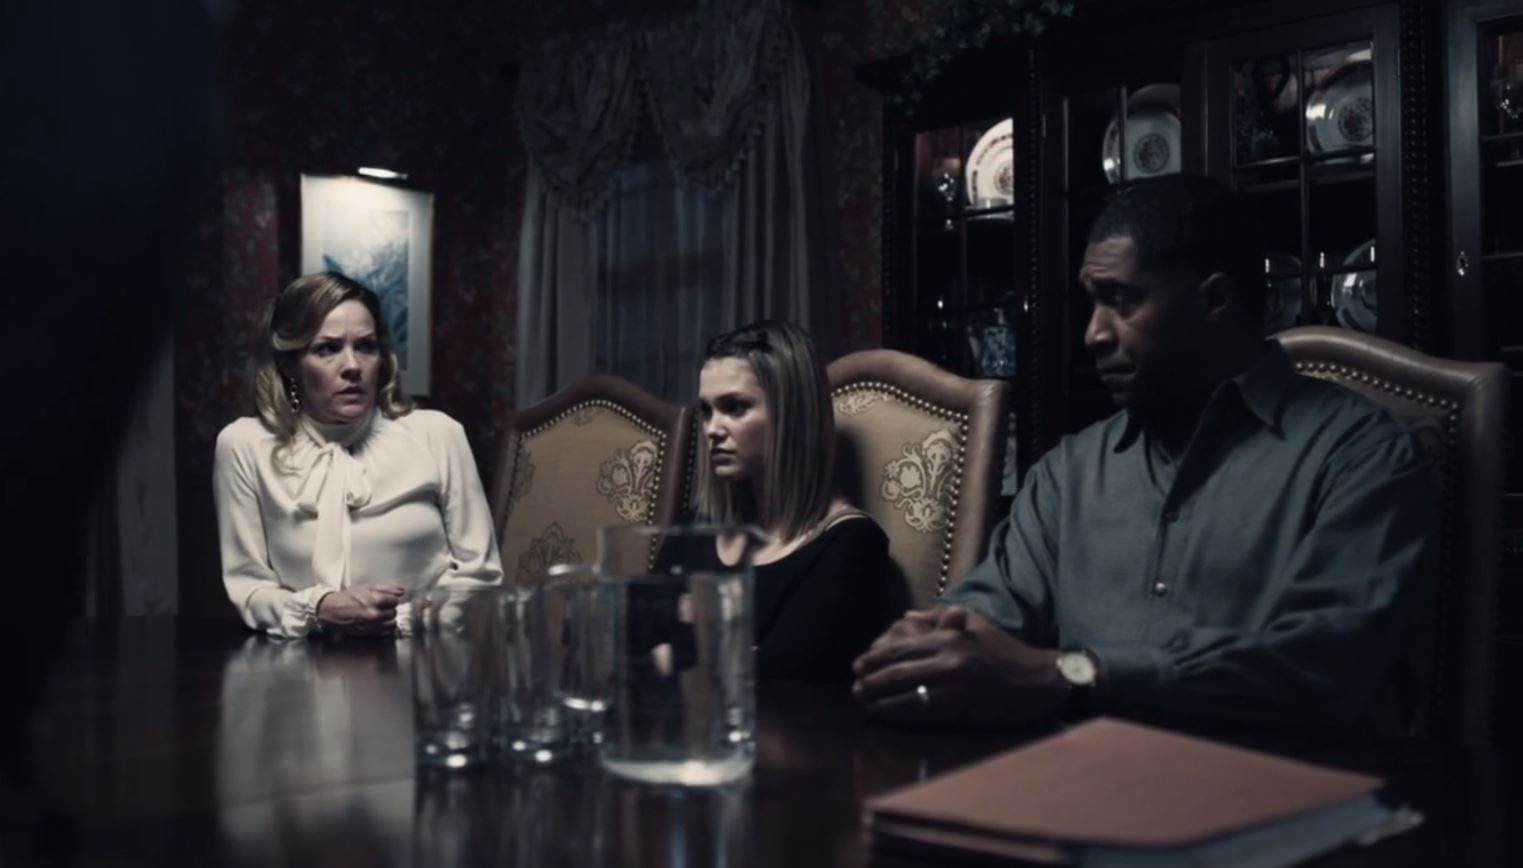 Cruel Summer Episode 4 Explained: Who are Anabelle and Benerice4?